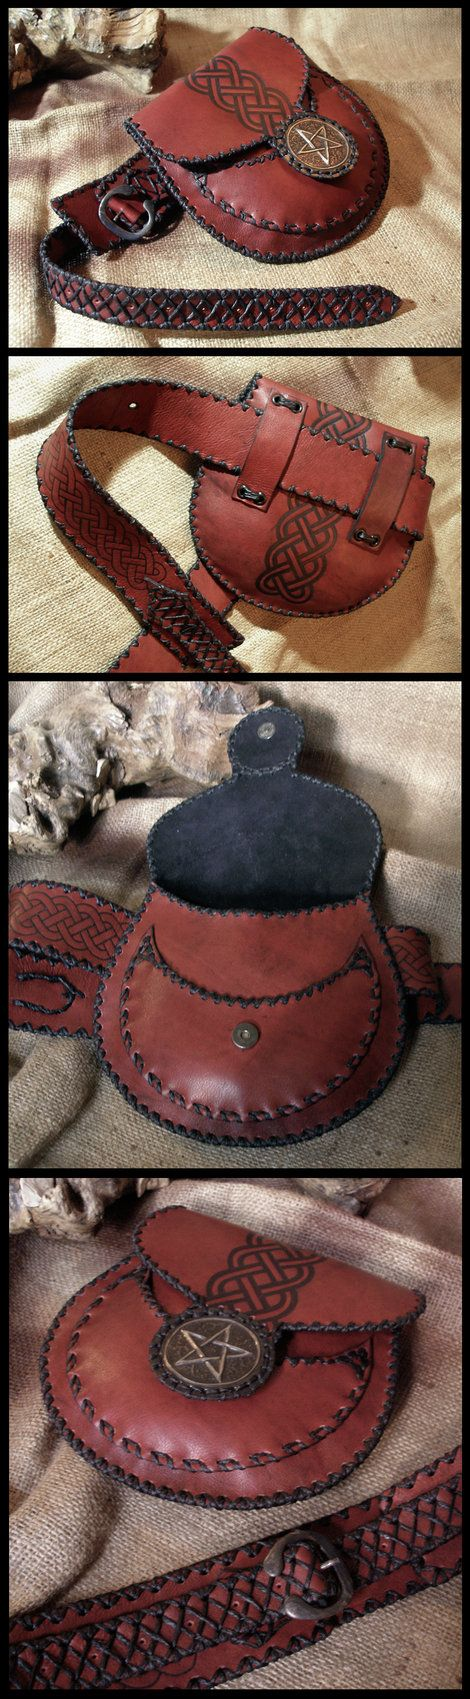 Finally I made a tobacco pouch for my self! Thor's design it's not mine. Design is painted on leather with dust colors. I made leather to look old because I like it better!